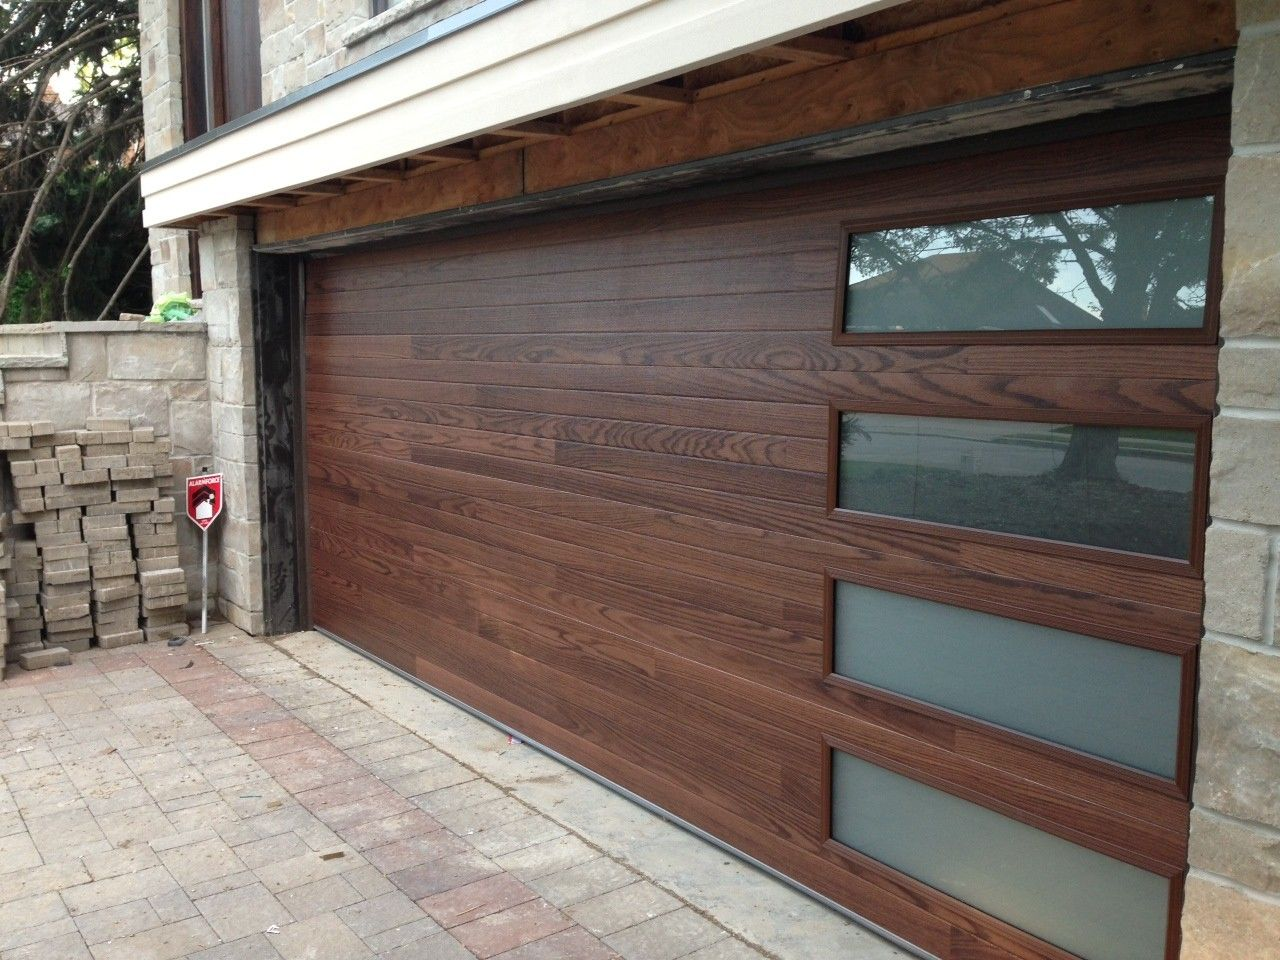 Modern Garage Door Modern Garage Doors Contemporary Garage Doors Garage Door Design